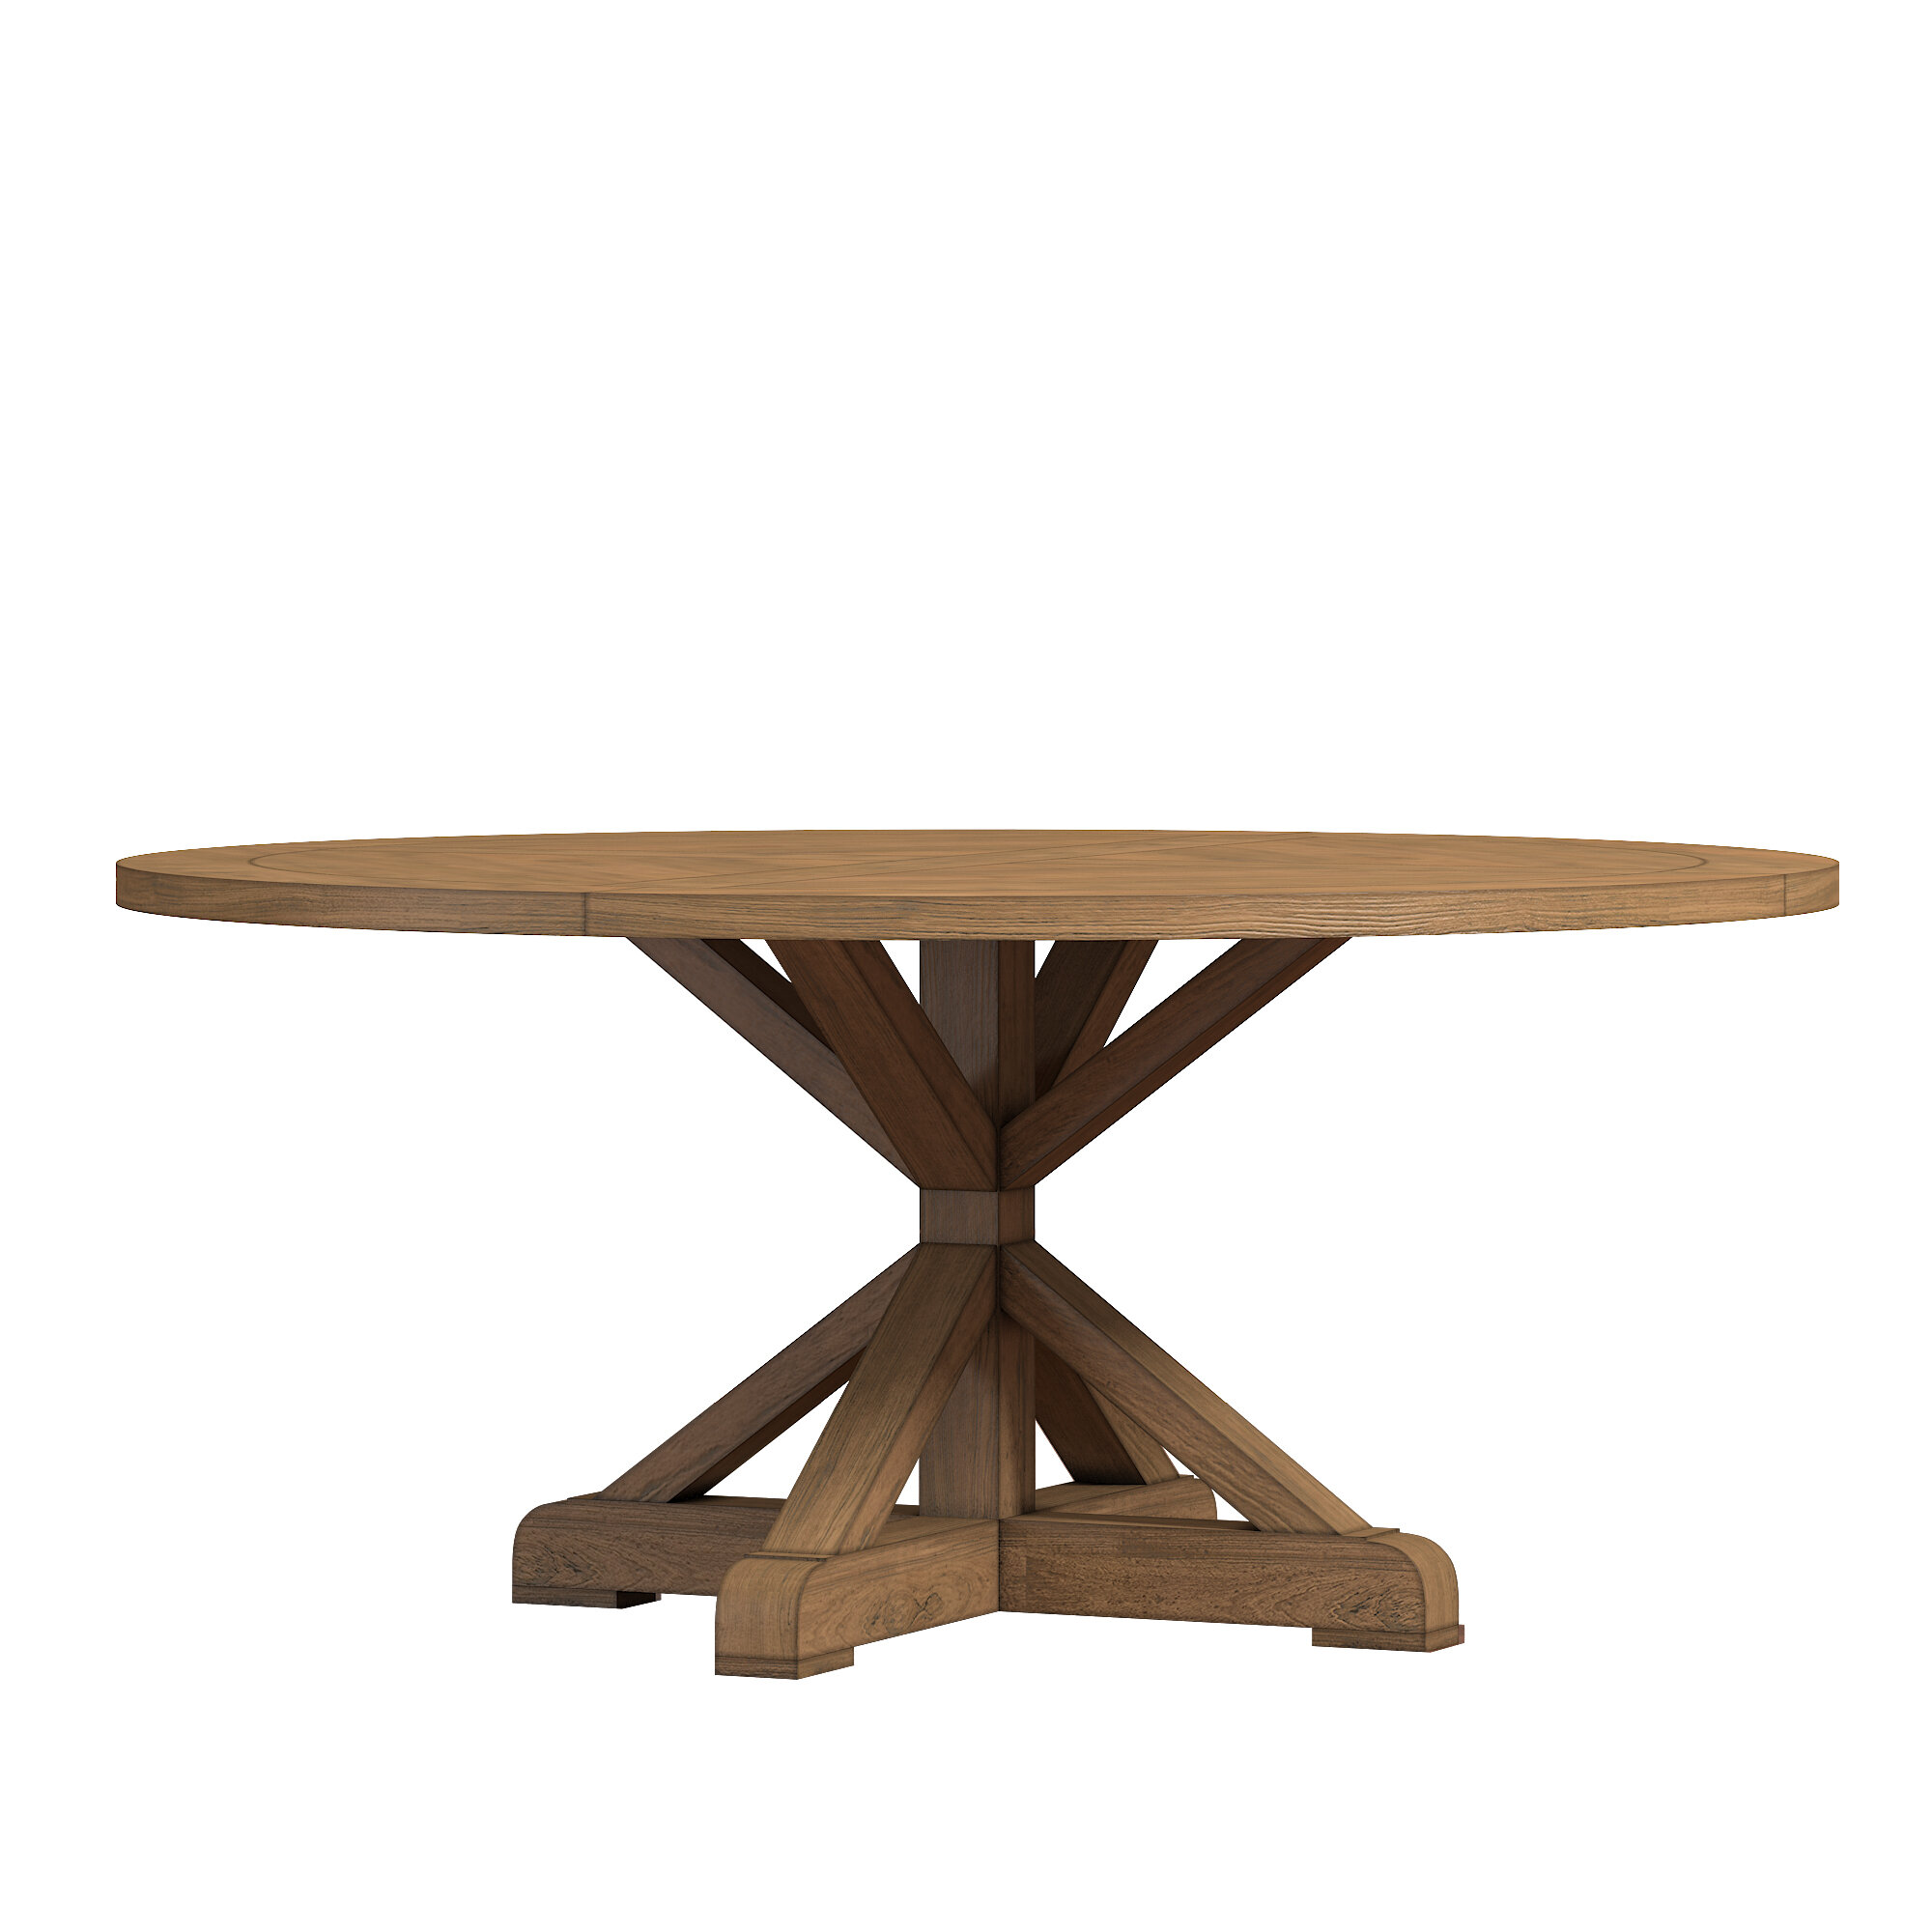 Peralta Round Rustic Solid Wood Dining Table Reviews Joss Main